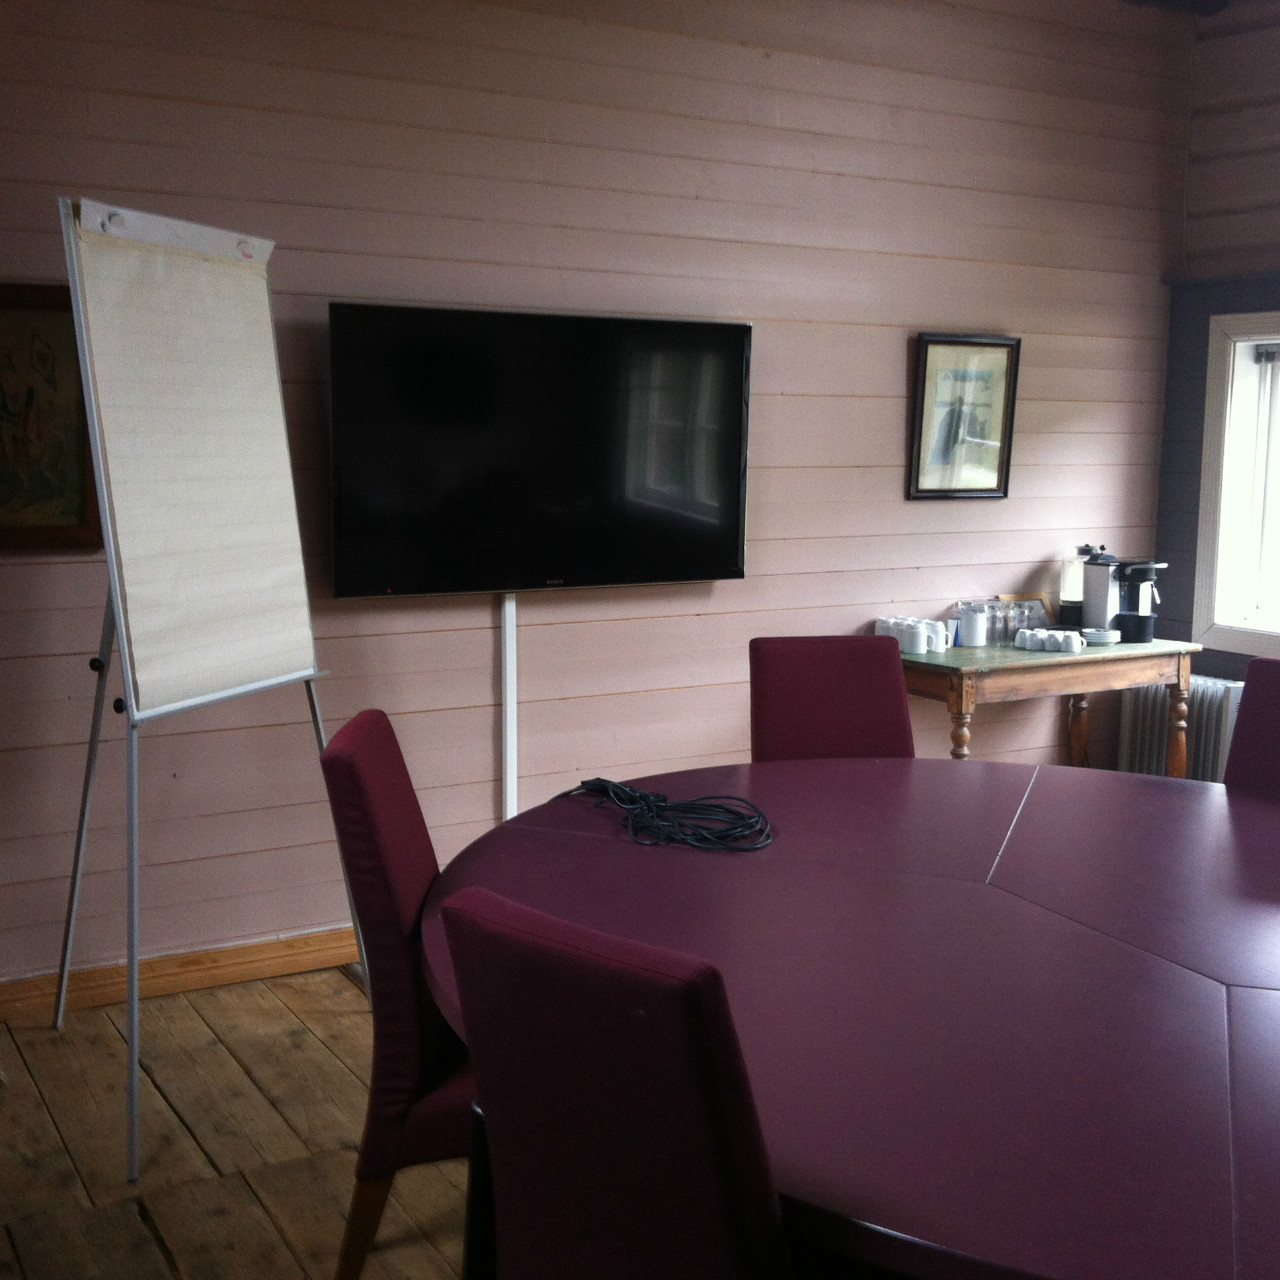 Storage-House-Meeting-Room-Kleivstua-History-TV-Youtube.JPG